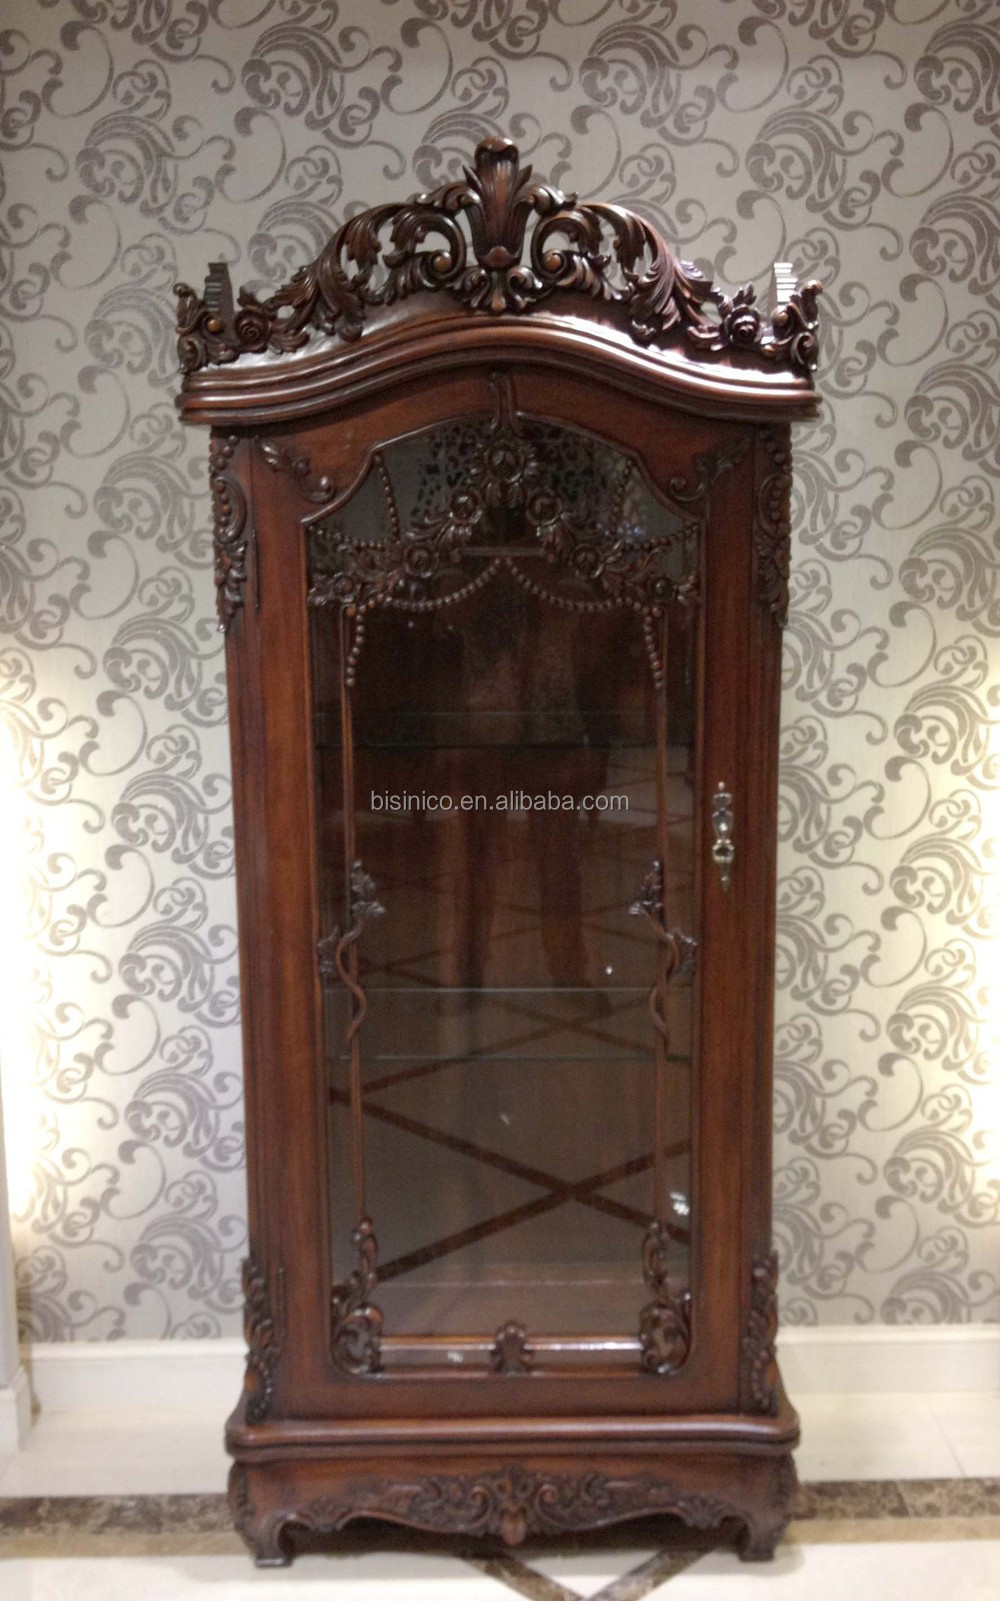 59-0409-507.JPG - Neoclassic Wood Carved Wine Cabinet/Show Cabinet, Luxury And Antique